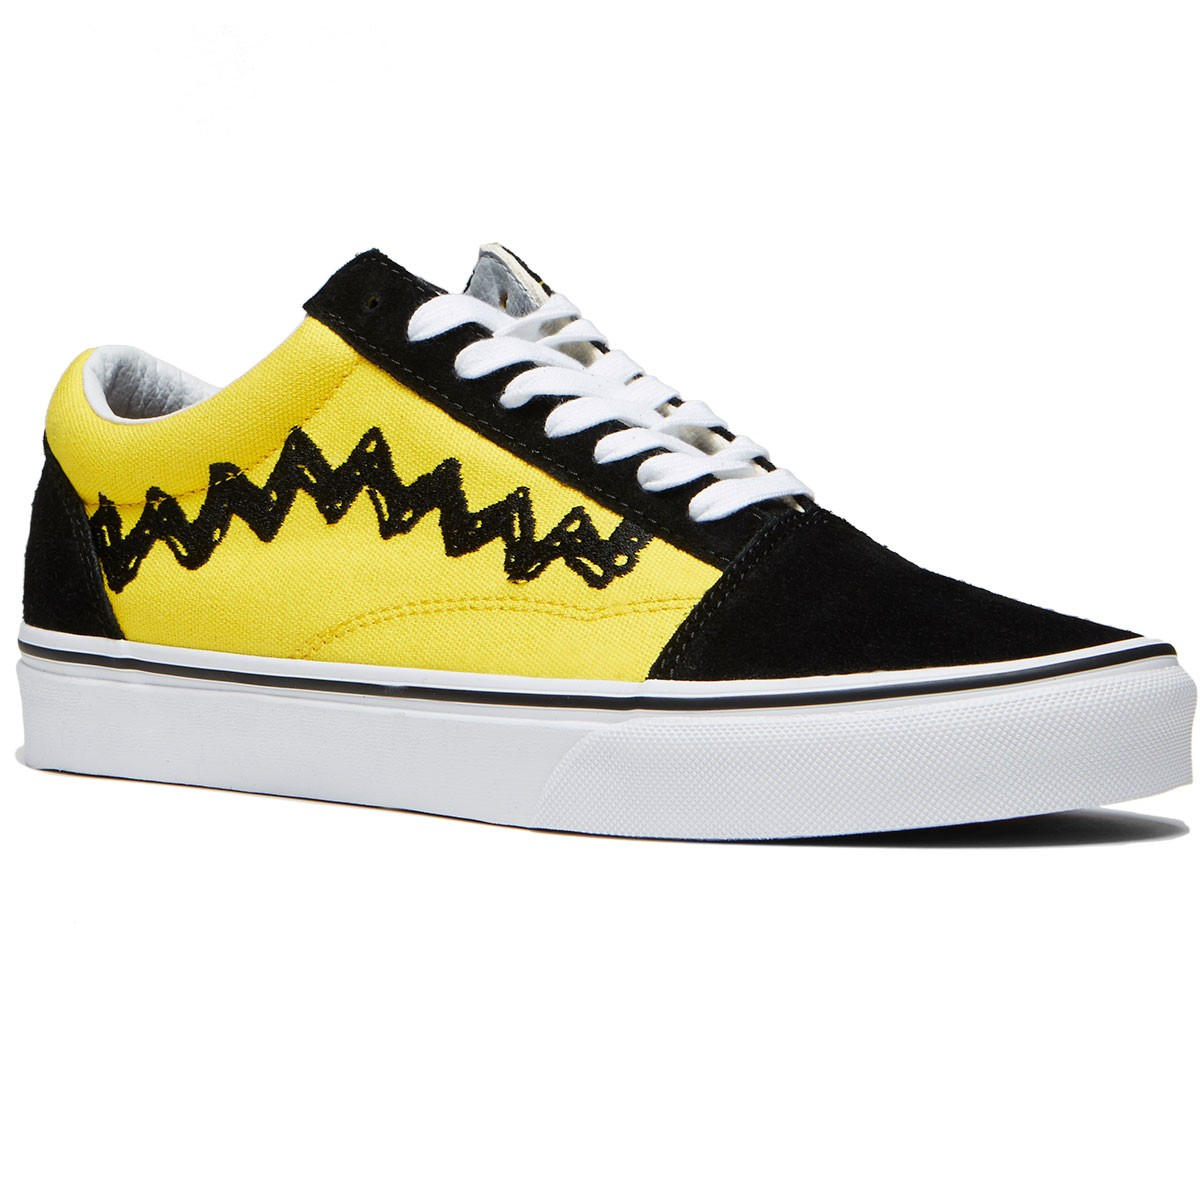 1e716522c8 Vans X Peanuts Old Skool Shoes - Charlie Brown Black - 8.0